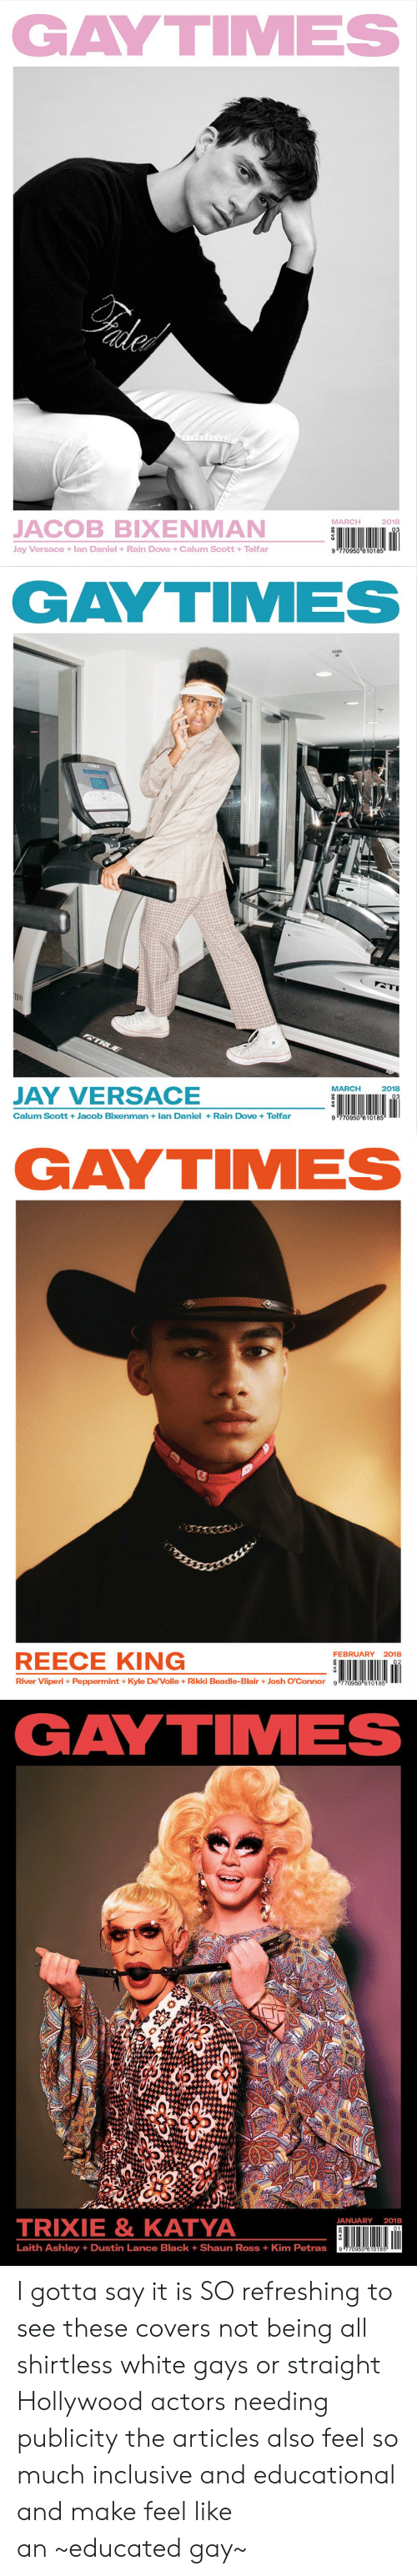 Versace: GAYTIMES  MARCH  2018  JACOB BIXENMAN  Jay Versace +lan Daniel +Rain Dove +Calum Scott +Telfar  9 770950 610185   GAYTIMES  MARCH2018  JAY VERSACE  Calum Scott +Jacob Bixenman lan Daniel+Rain Dove +Telfar  9 770950 610185   GAYTIMES  FEBRUARY 2018  REECE KING  River Viiperi+ Peppermint +Kyle De'Volle+ Rikki Beadle-BlairJosh O'Connor g 770950 610185   GAYTIMES  TRIXIE& KATYA  JANUARY 2018  01  Laith Ashley +Dustin Lance Black + Shaun Ross + Kim Petras I gotta say it is SO refreshing to see these covers not being all shirtless white gays or straight Hollywood actors needing publicitythe articles also feel so much inclusive and educational and make feel like an~educated gay~